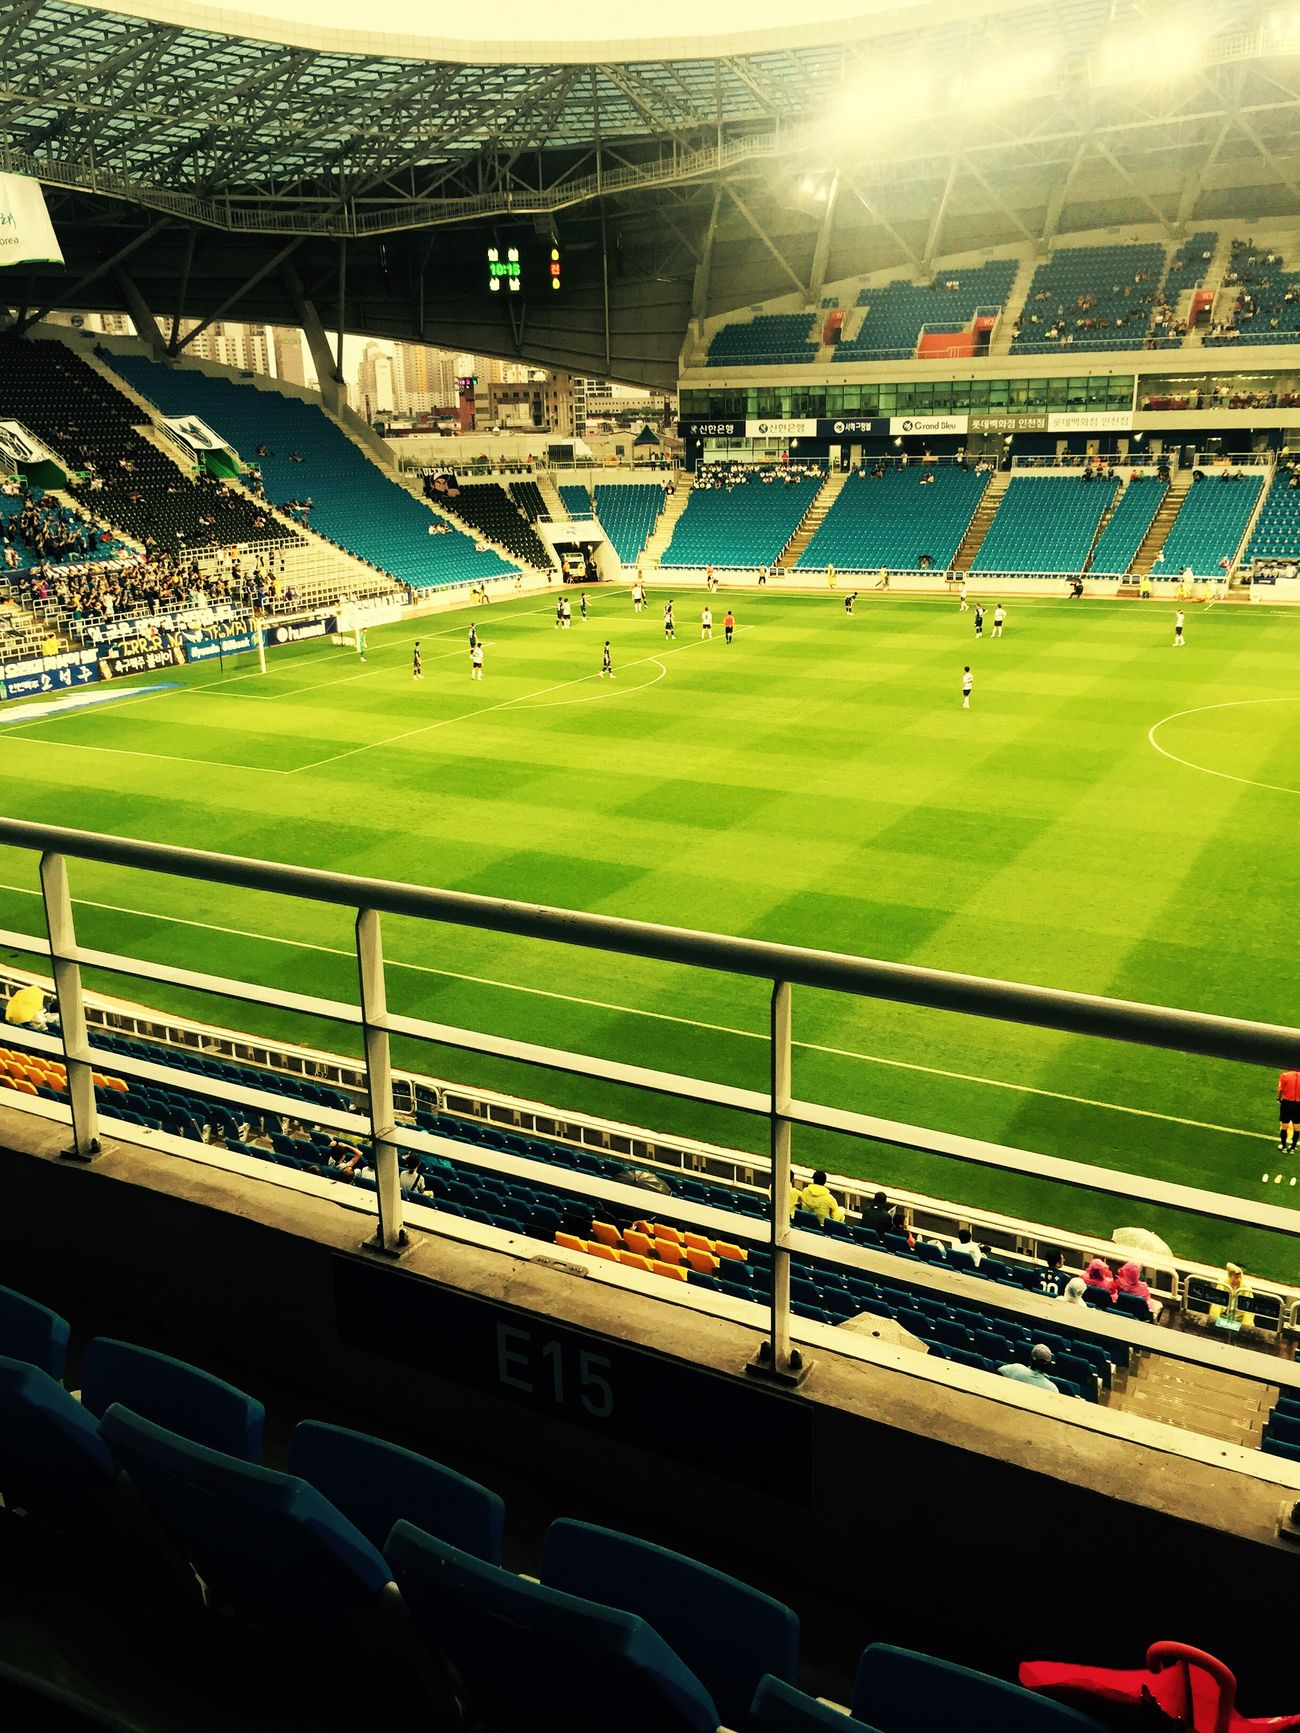 비 오는날 축구경기 K-League Soccer Incheon First Eyeem Photo